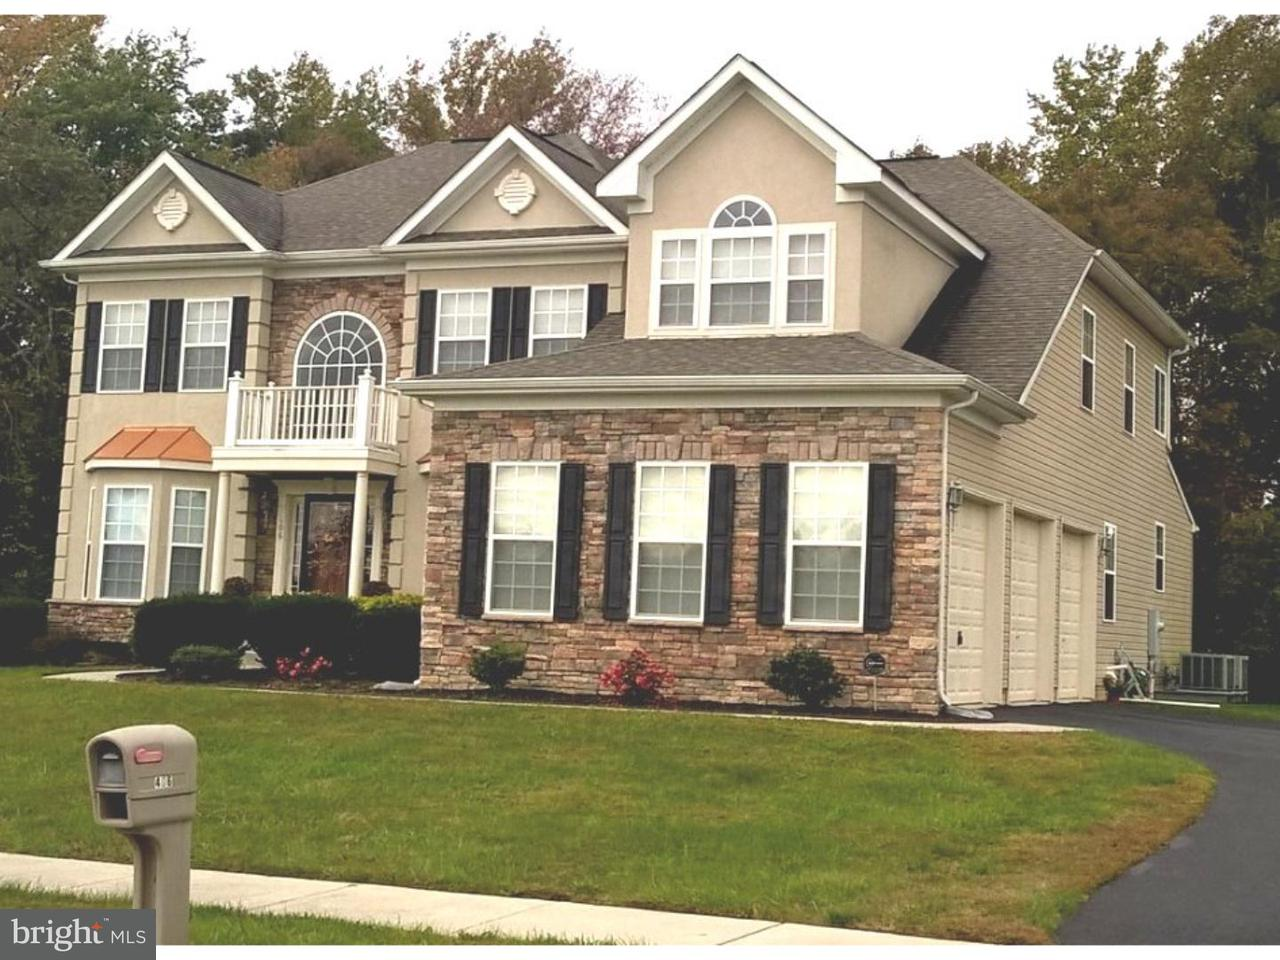 Single Family Home for Sale at 406 ZAMORA Court Townsend, Delaware 19734 United States